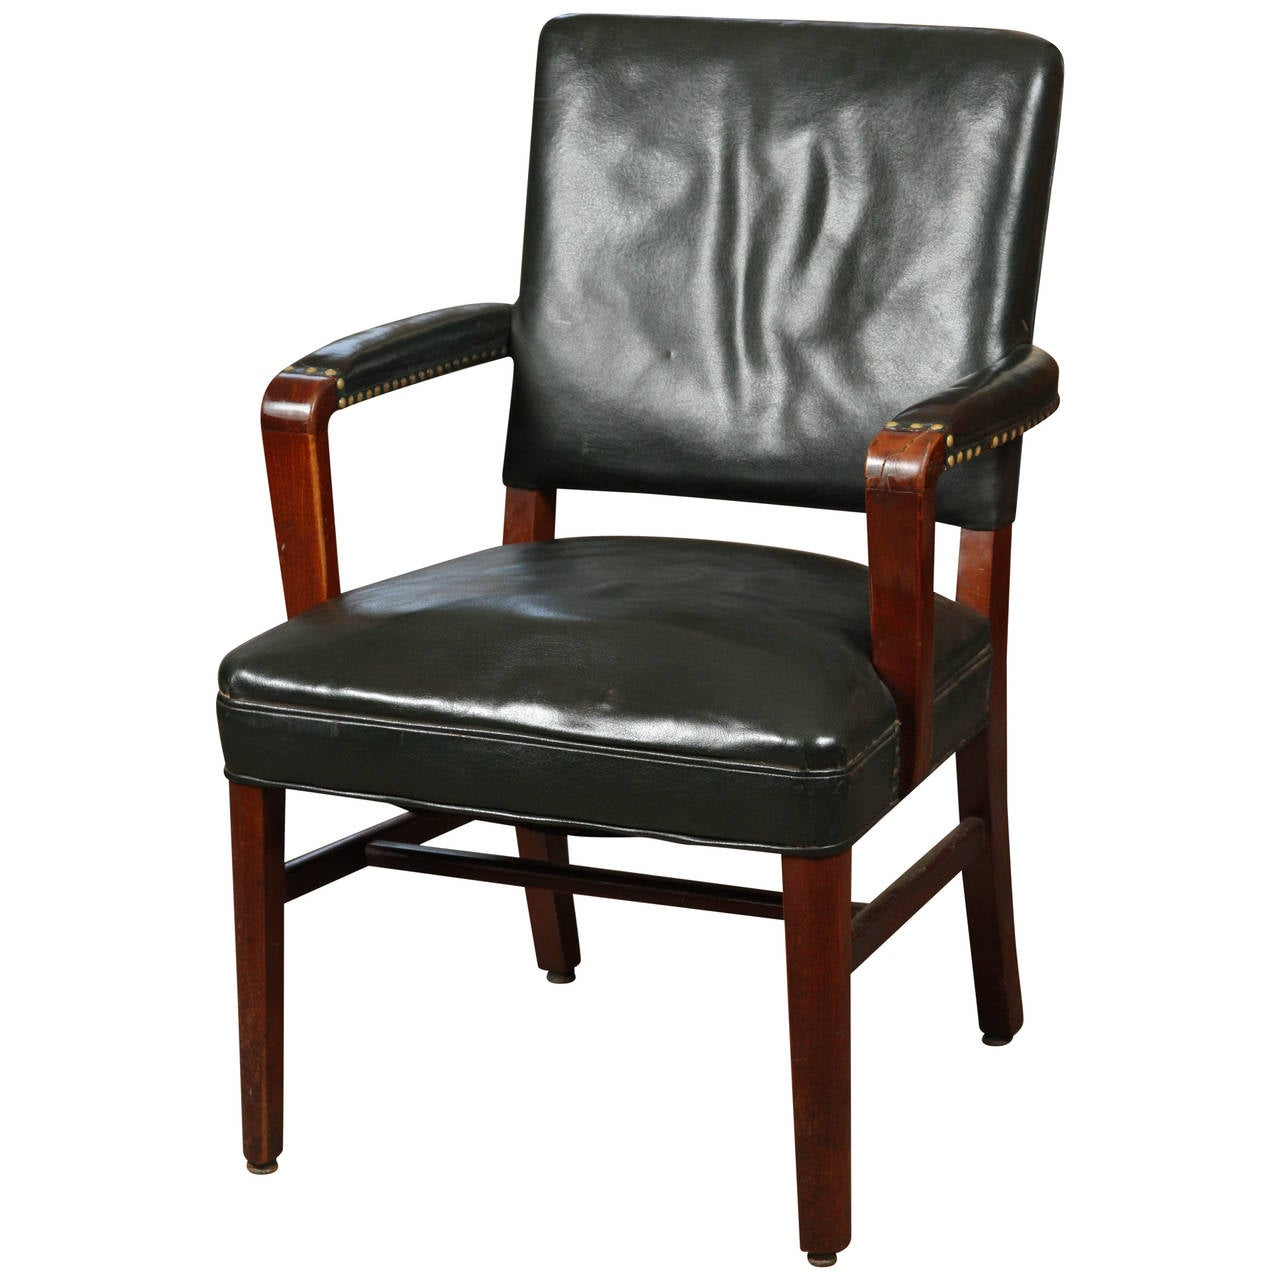 leather desk chairs exterior rocking chair at 1stdibs